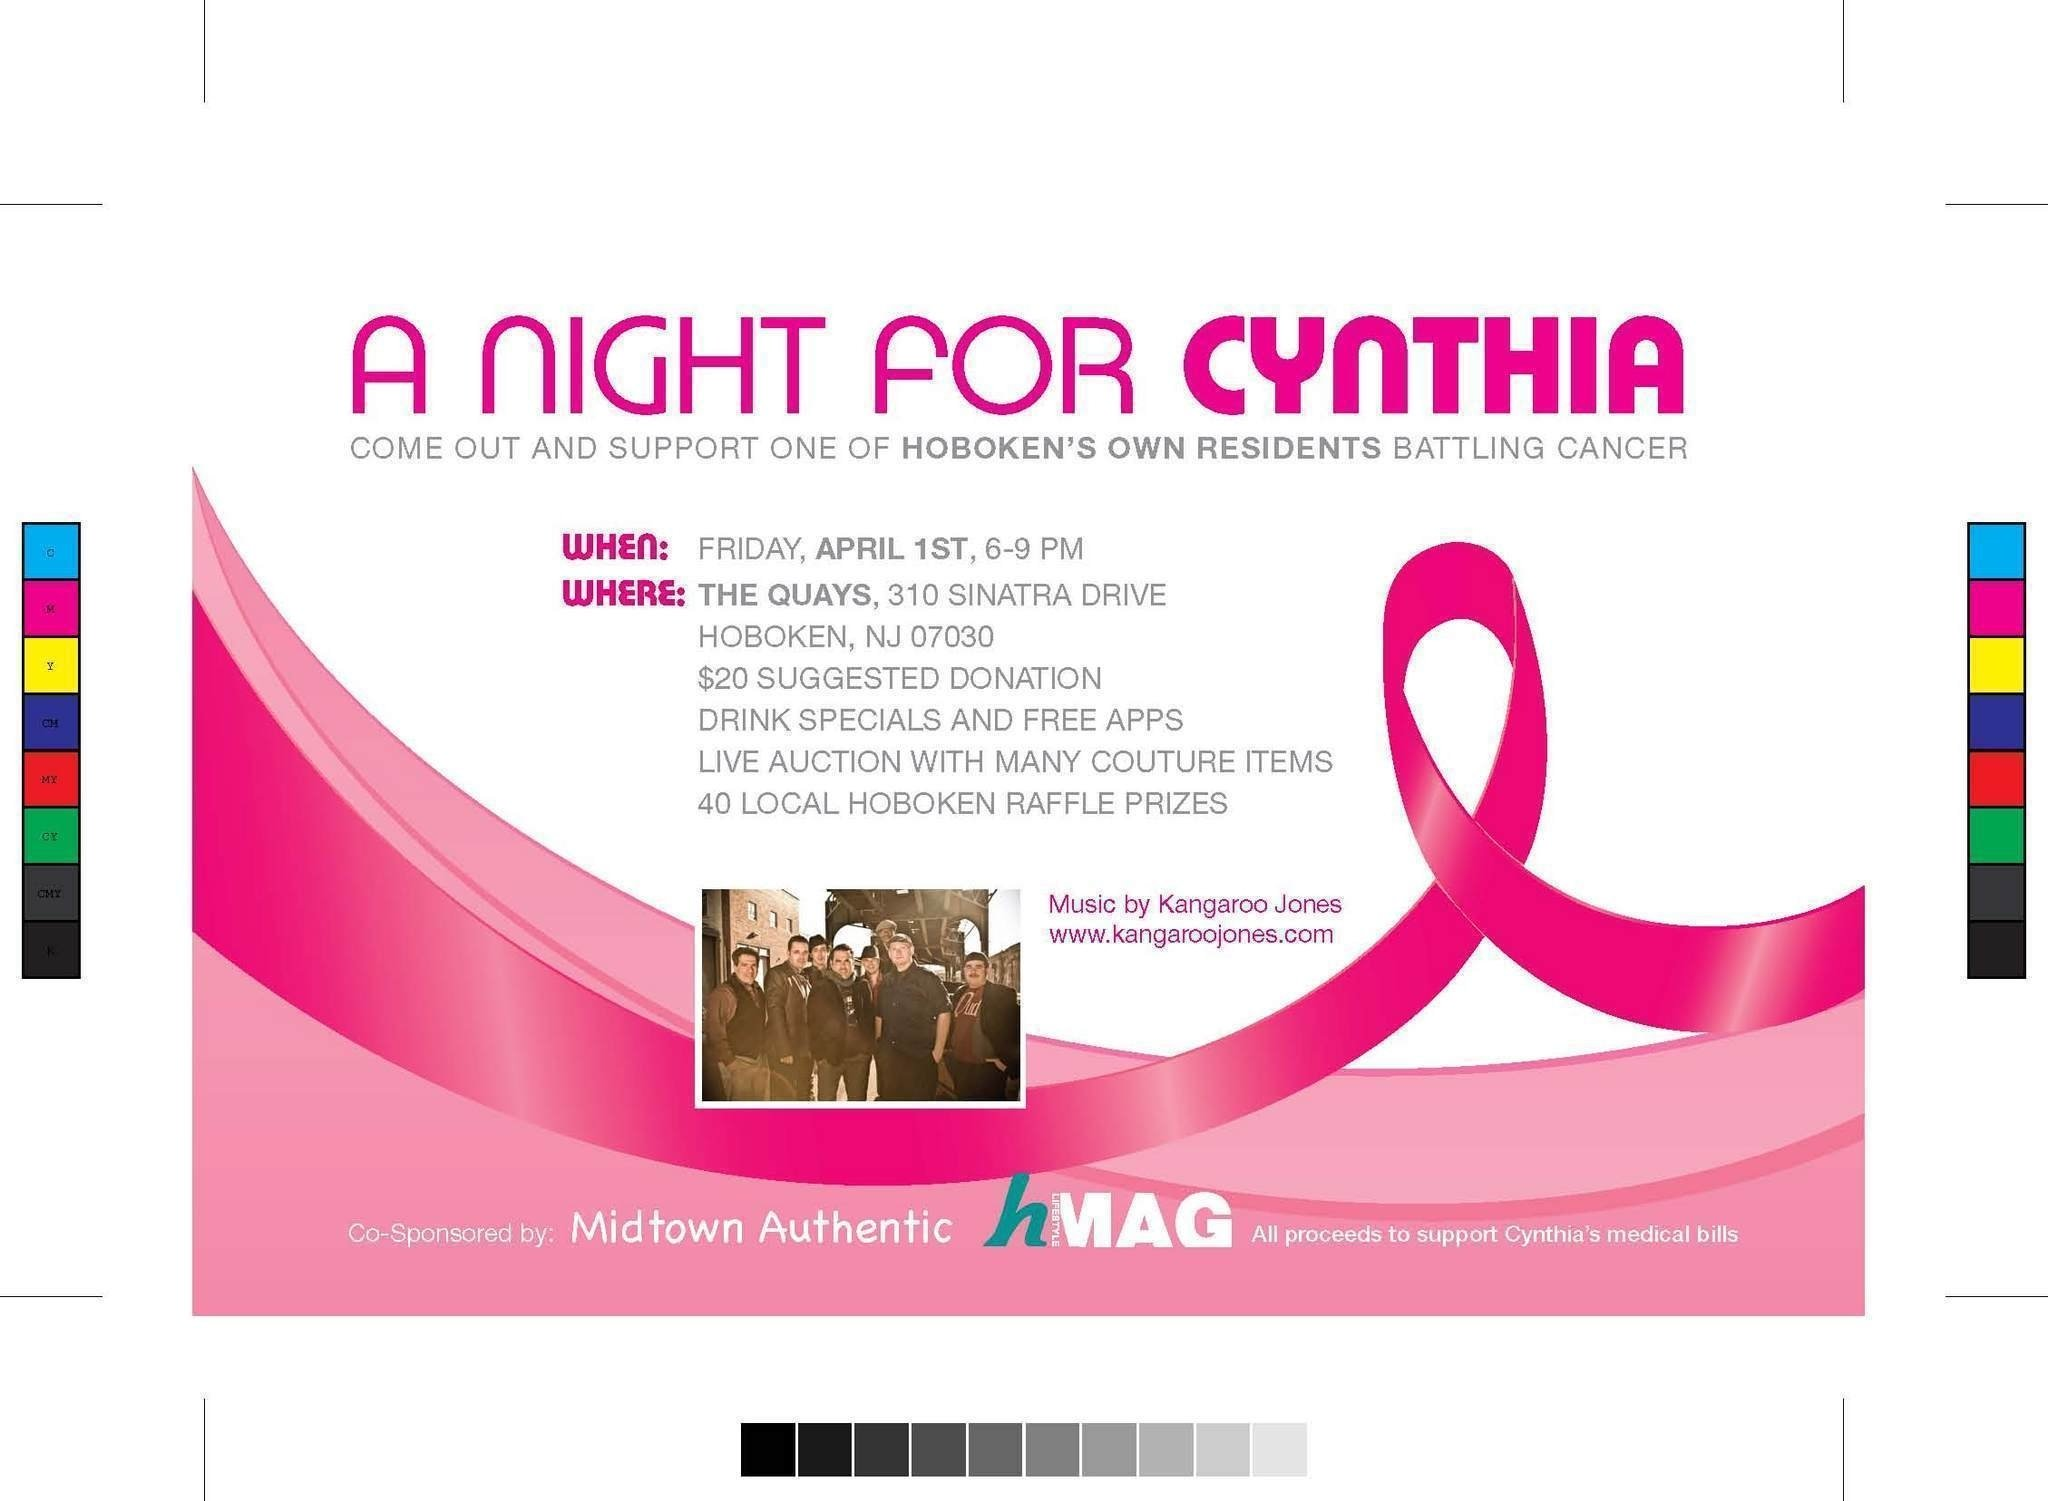 10 Stylish Benefit Ideas For Cancer Patients hoboken business owner co hosts fundraiser for friend with colon 1 2020